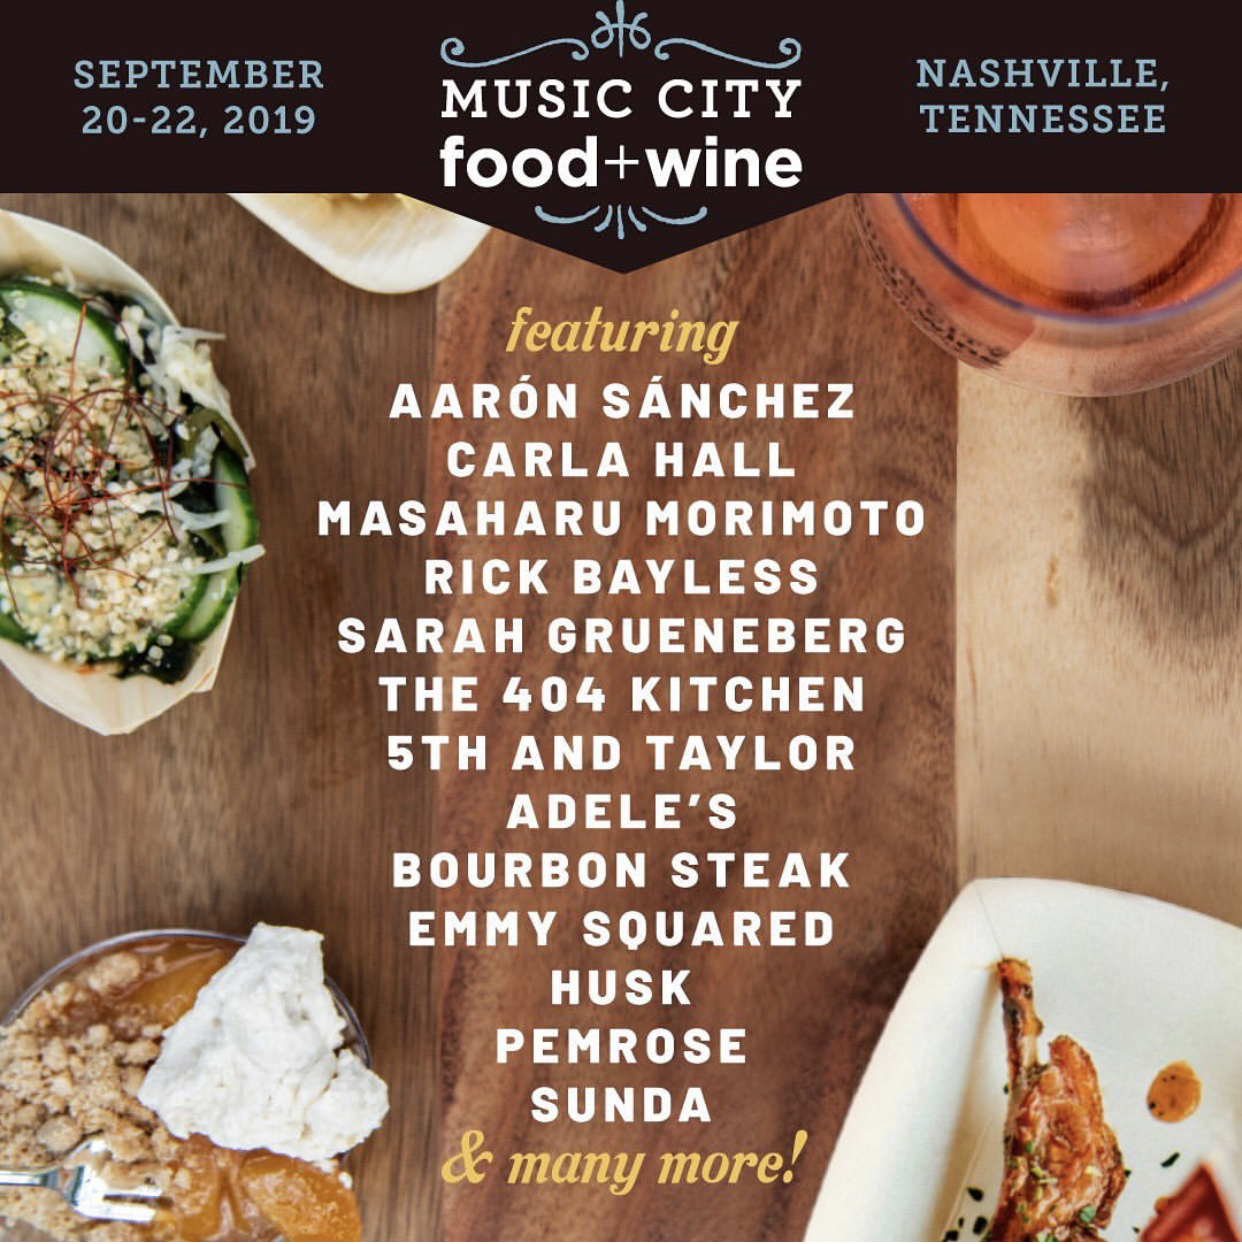 Image courtesy of Music City Food and Wine